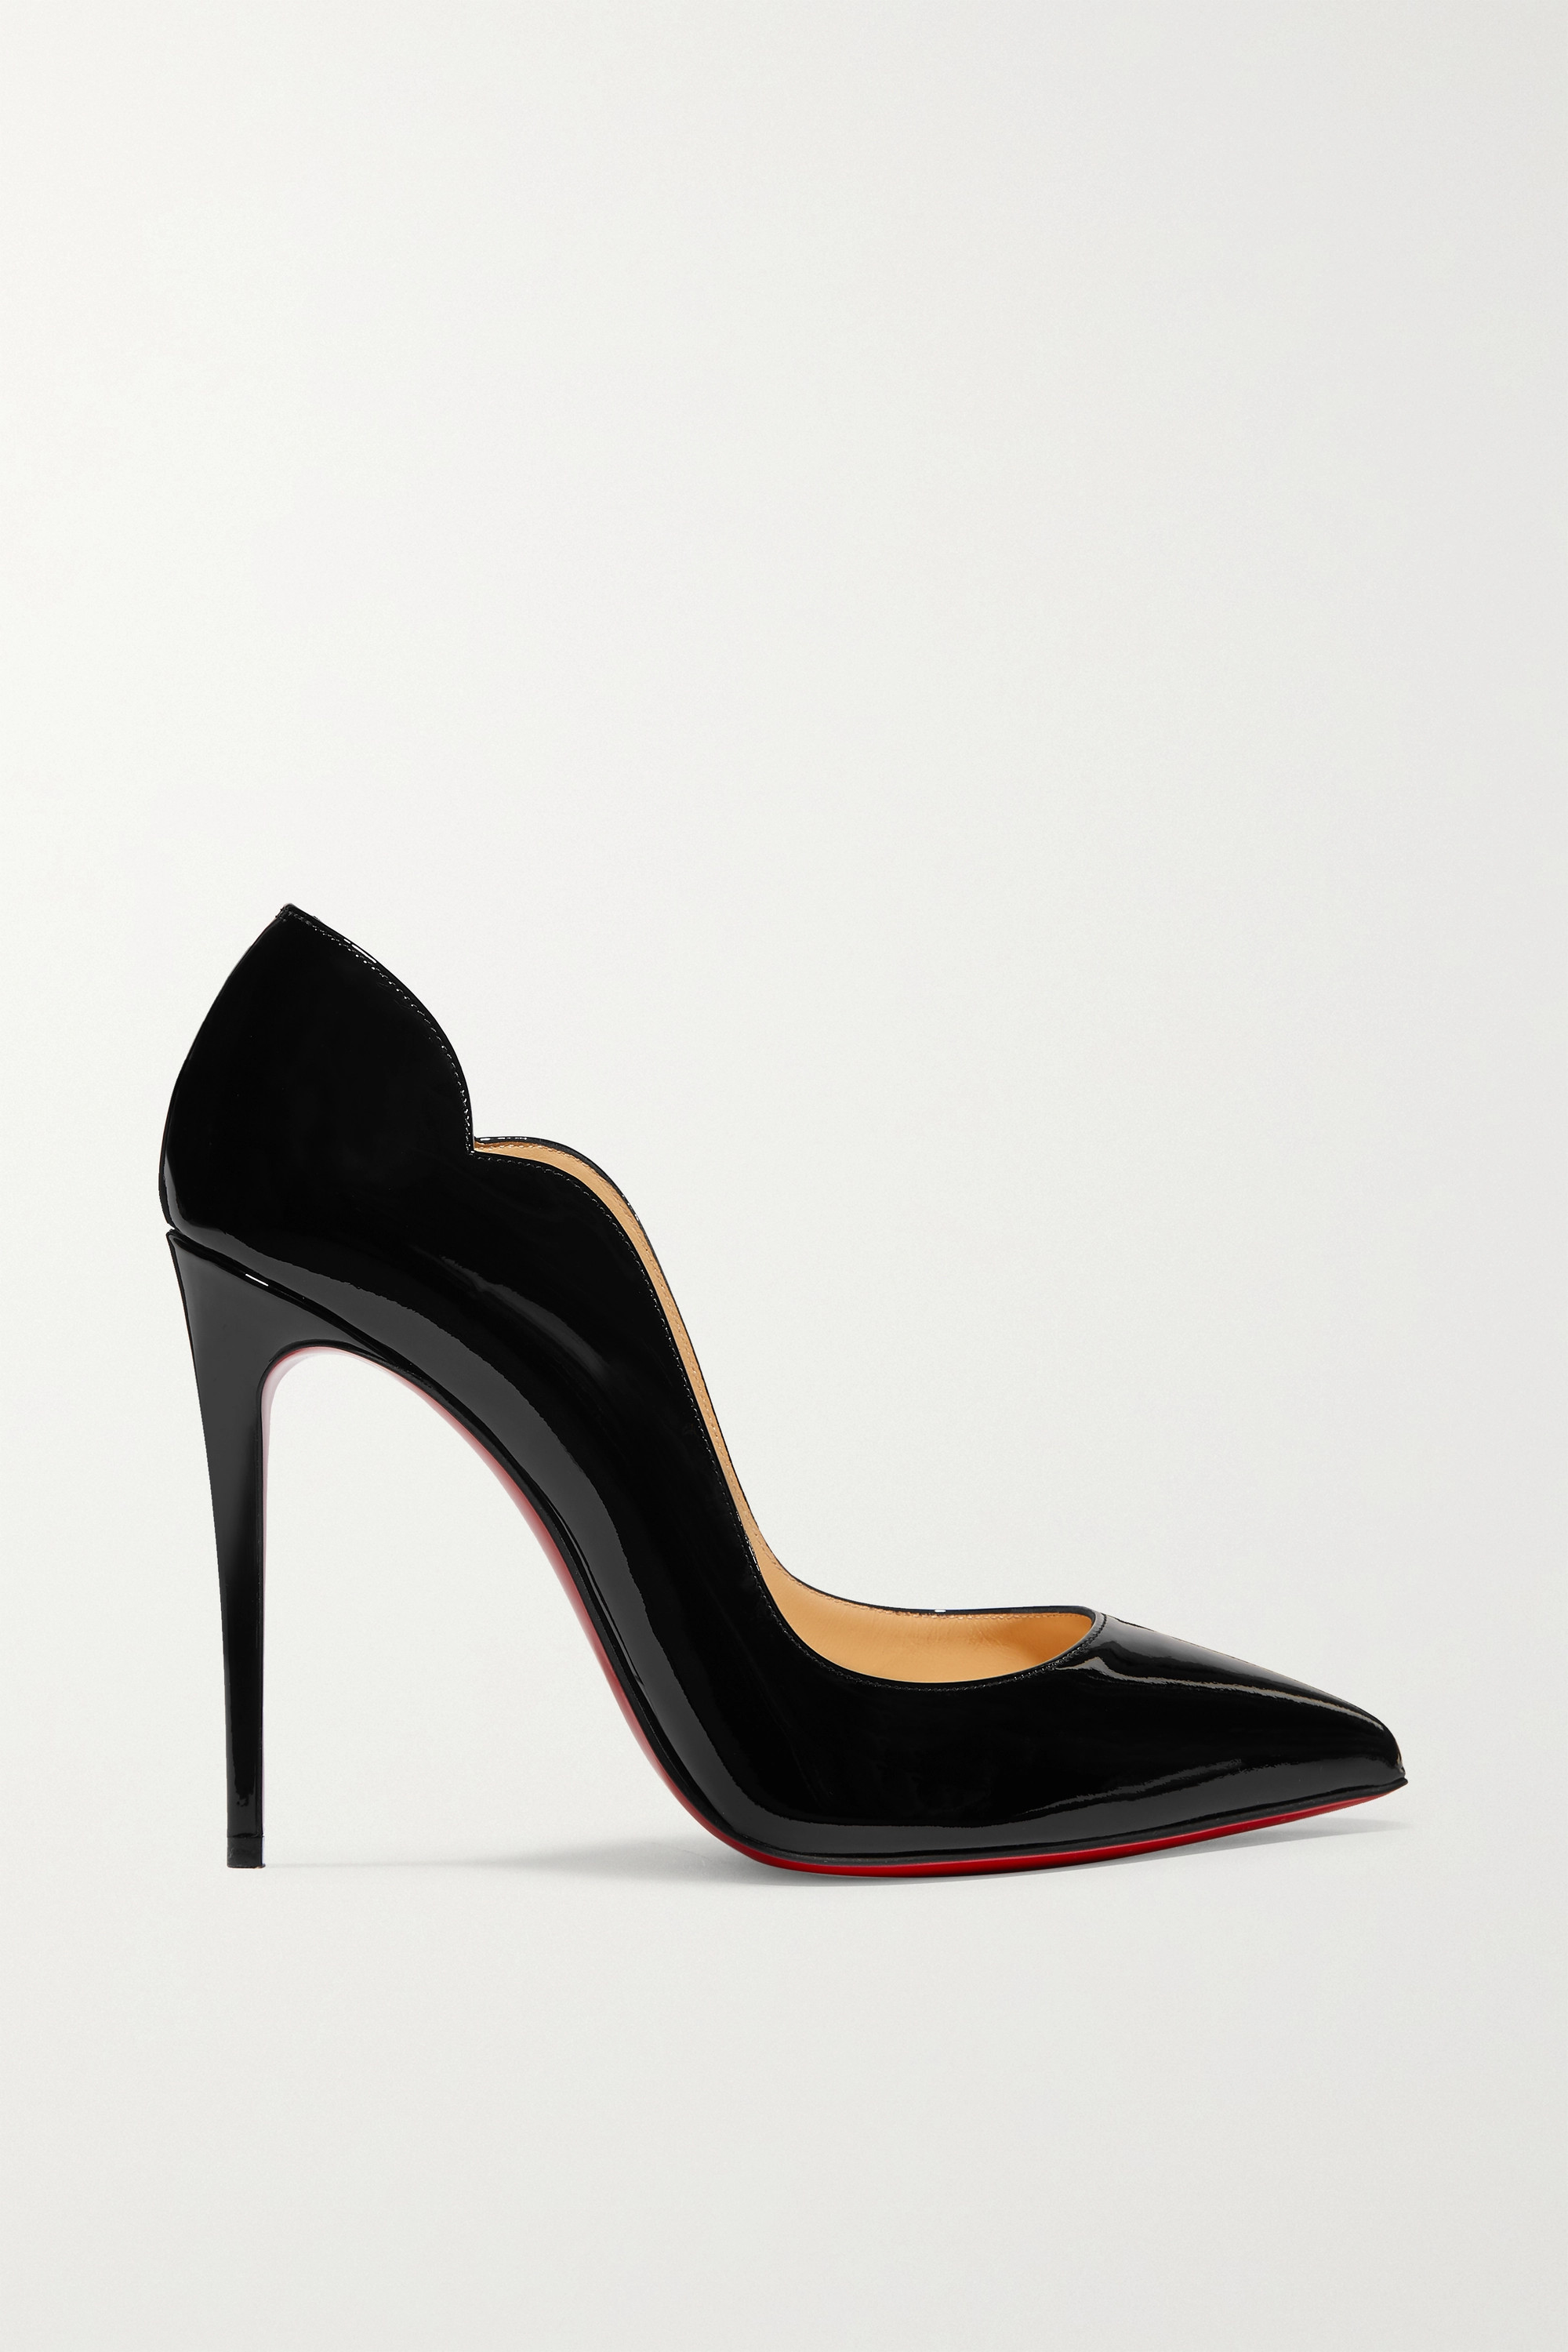 Christian Louboutin Hot Chick 100 patent-leather pumps